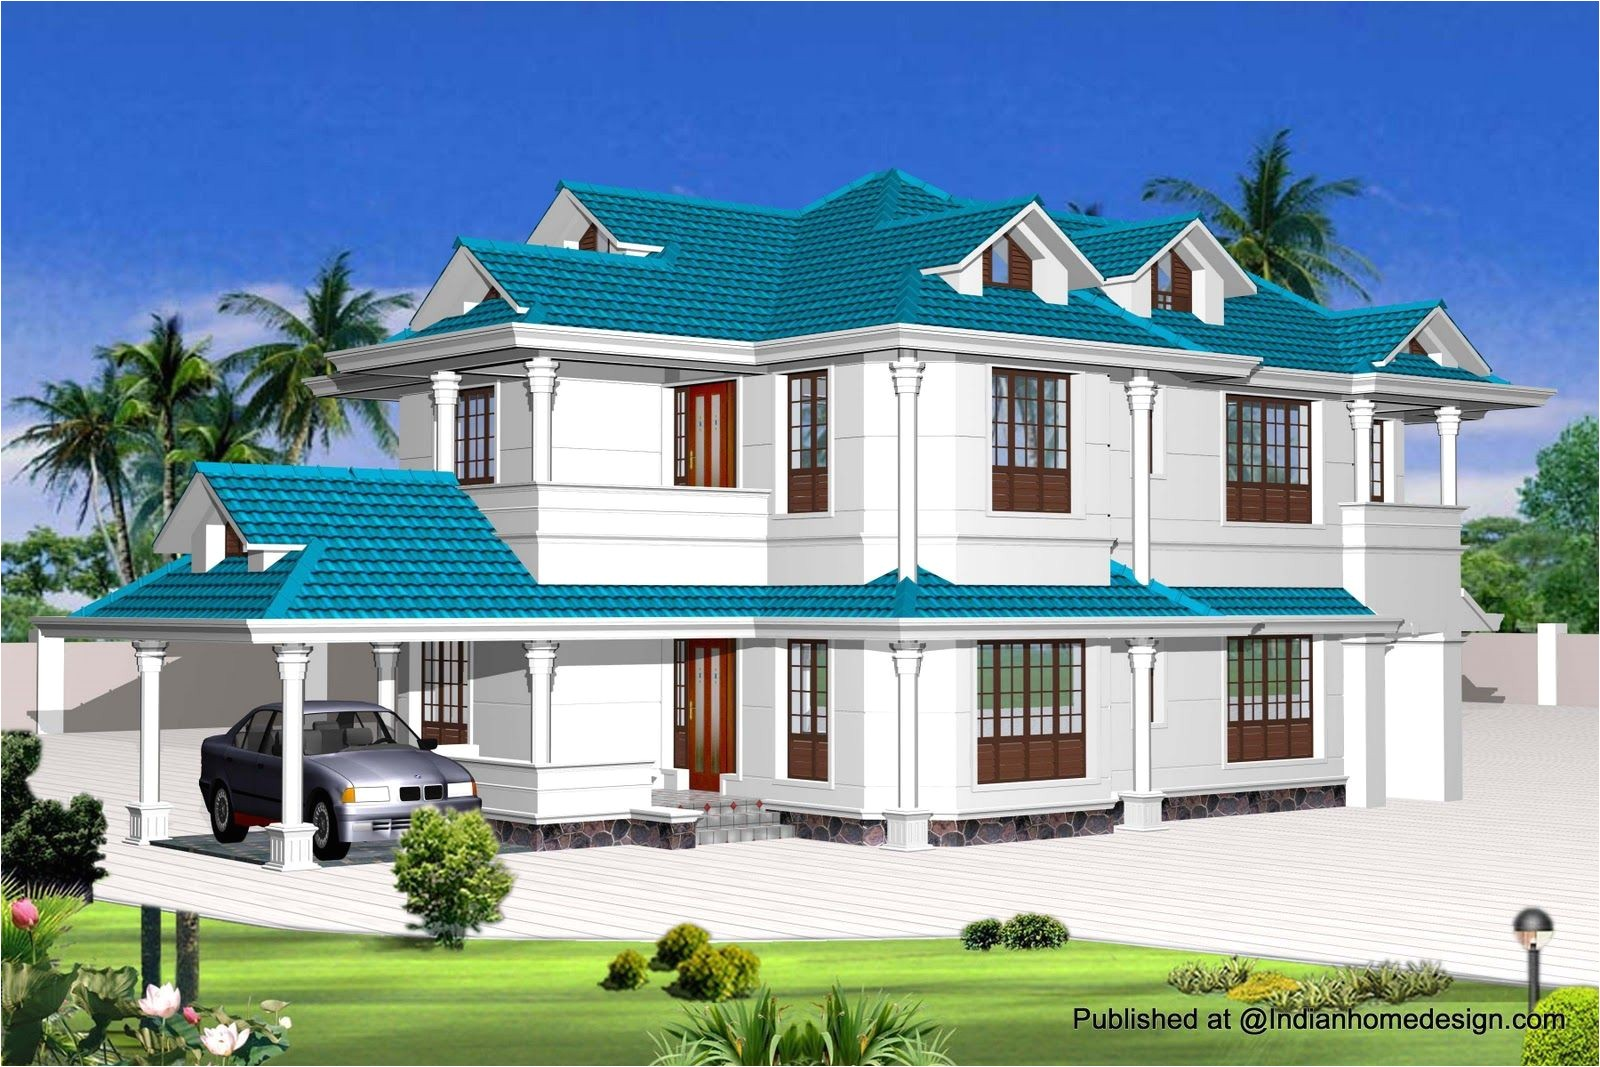 House Plans for Indian Homes Inspirational Indian House Plans Bedroom Pinterest